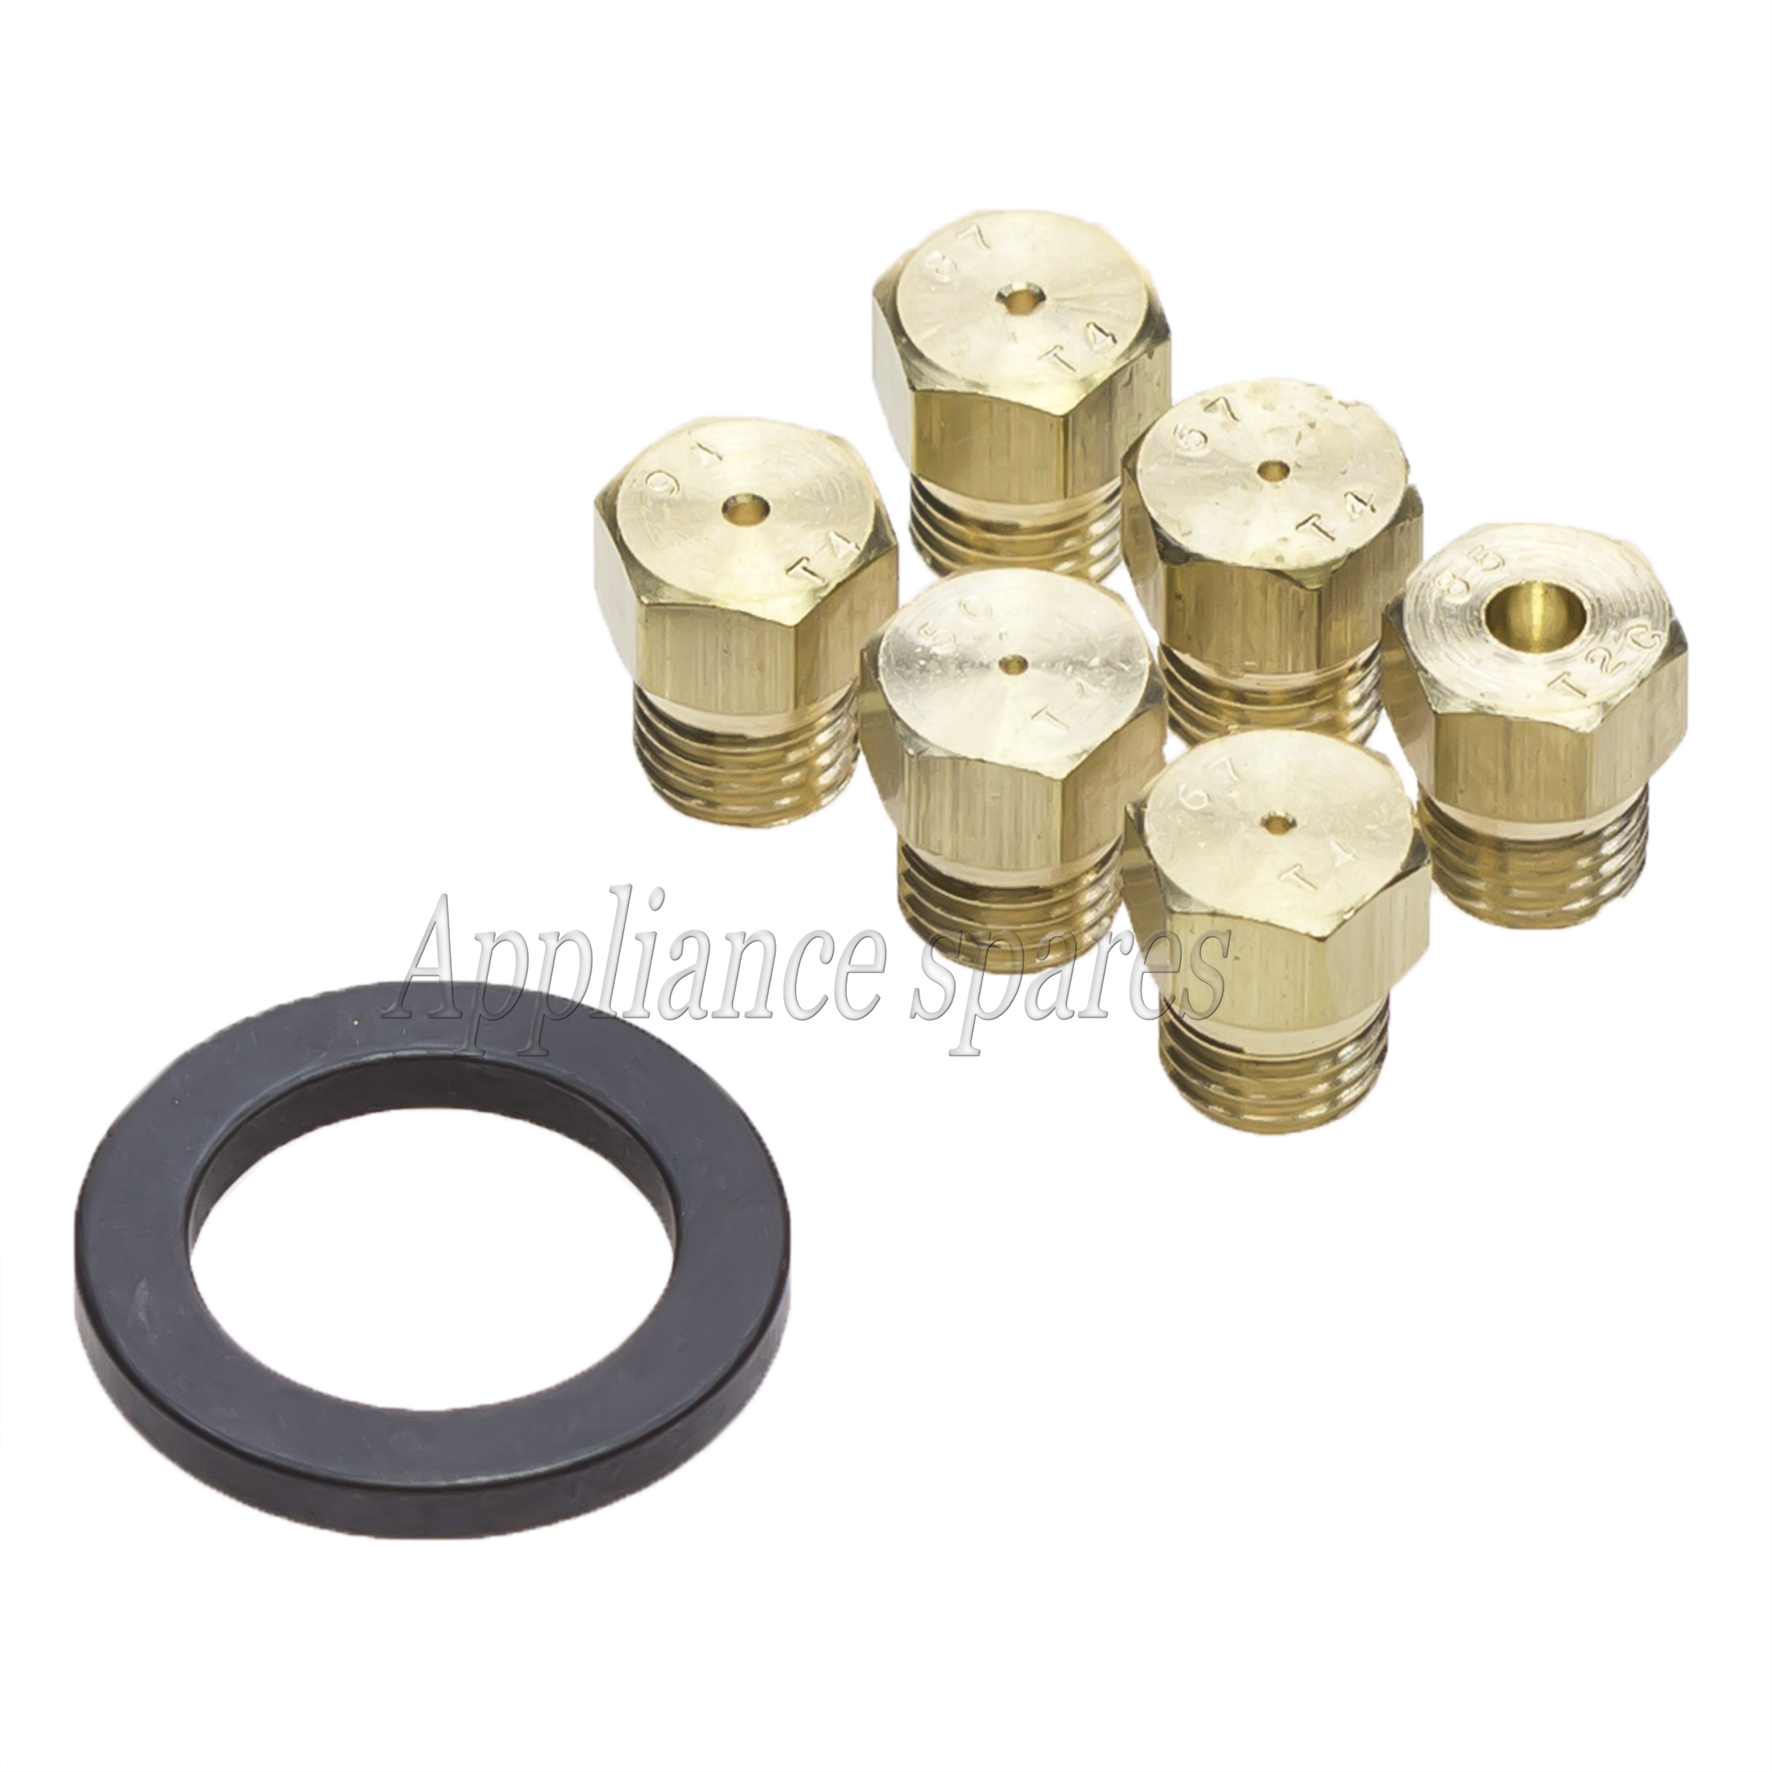 Whirlpool Gas Stove Nozzle Set Whirlpool Gas Stove Parts